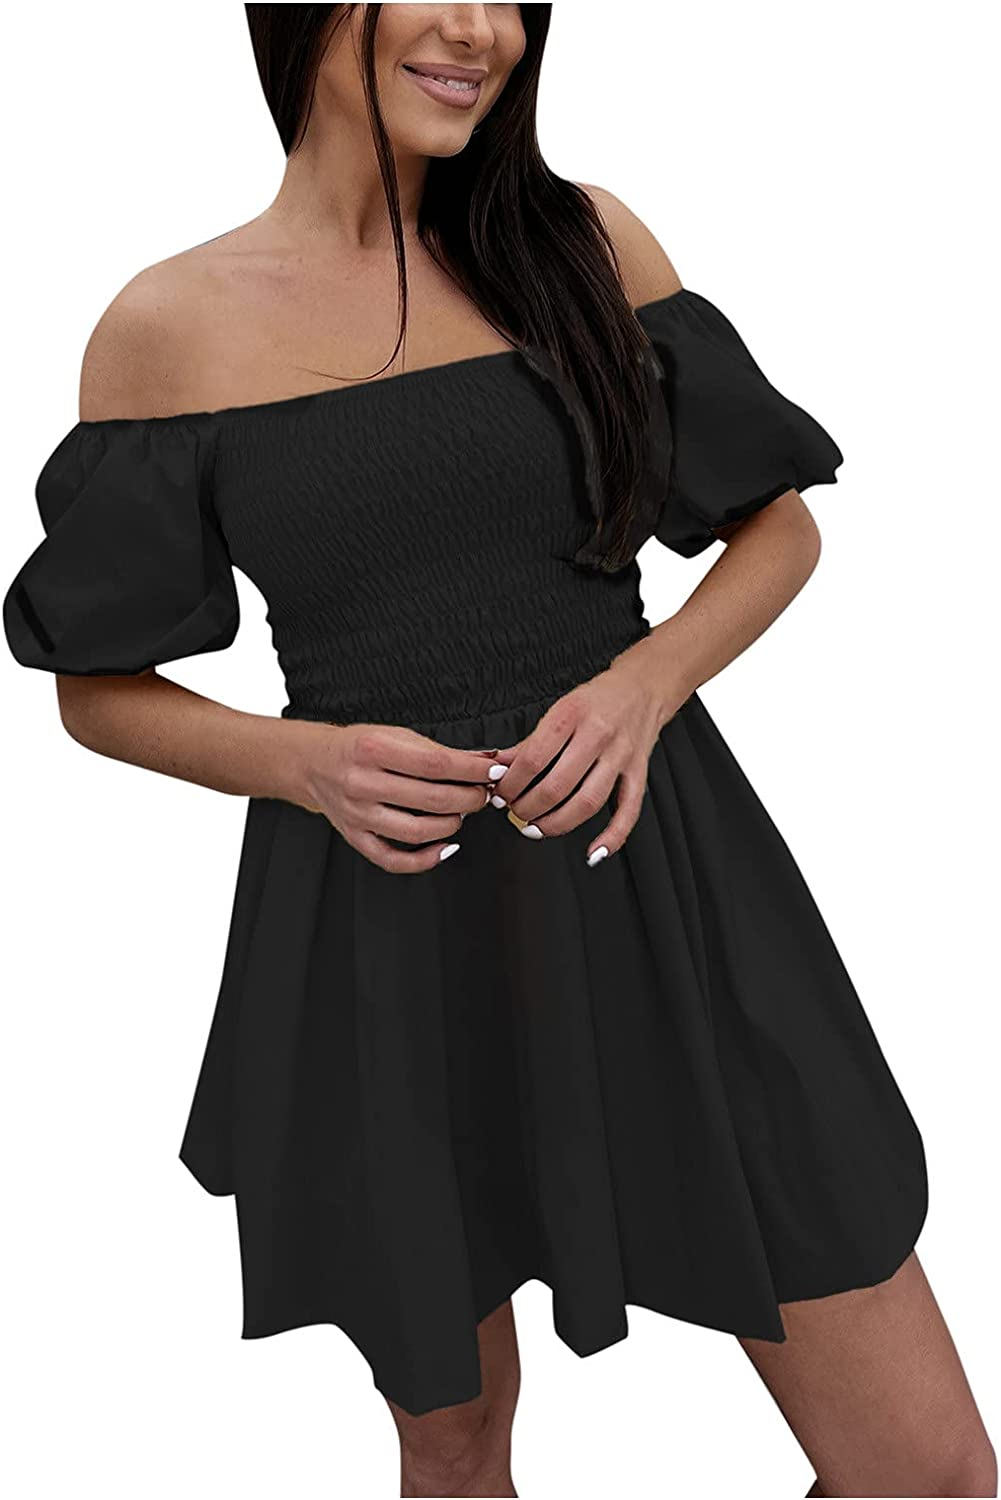 Sayhi Women's Party Dresses Solid Color Hedging Tube Top Short Sleeve Draw Back Casual Tunic Dresses